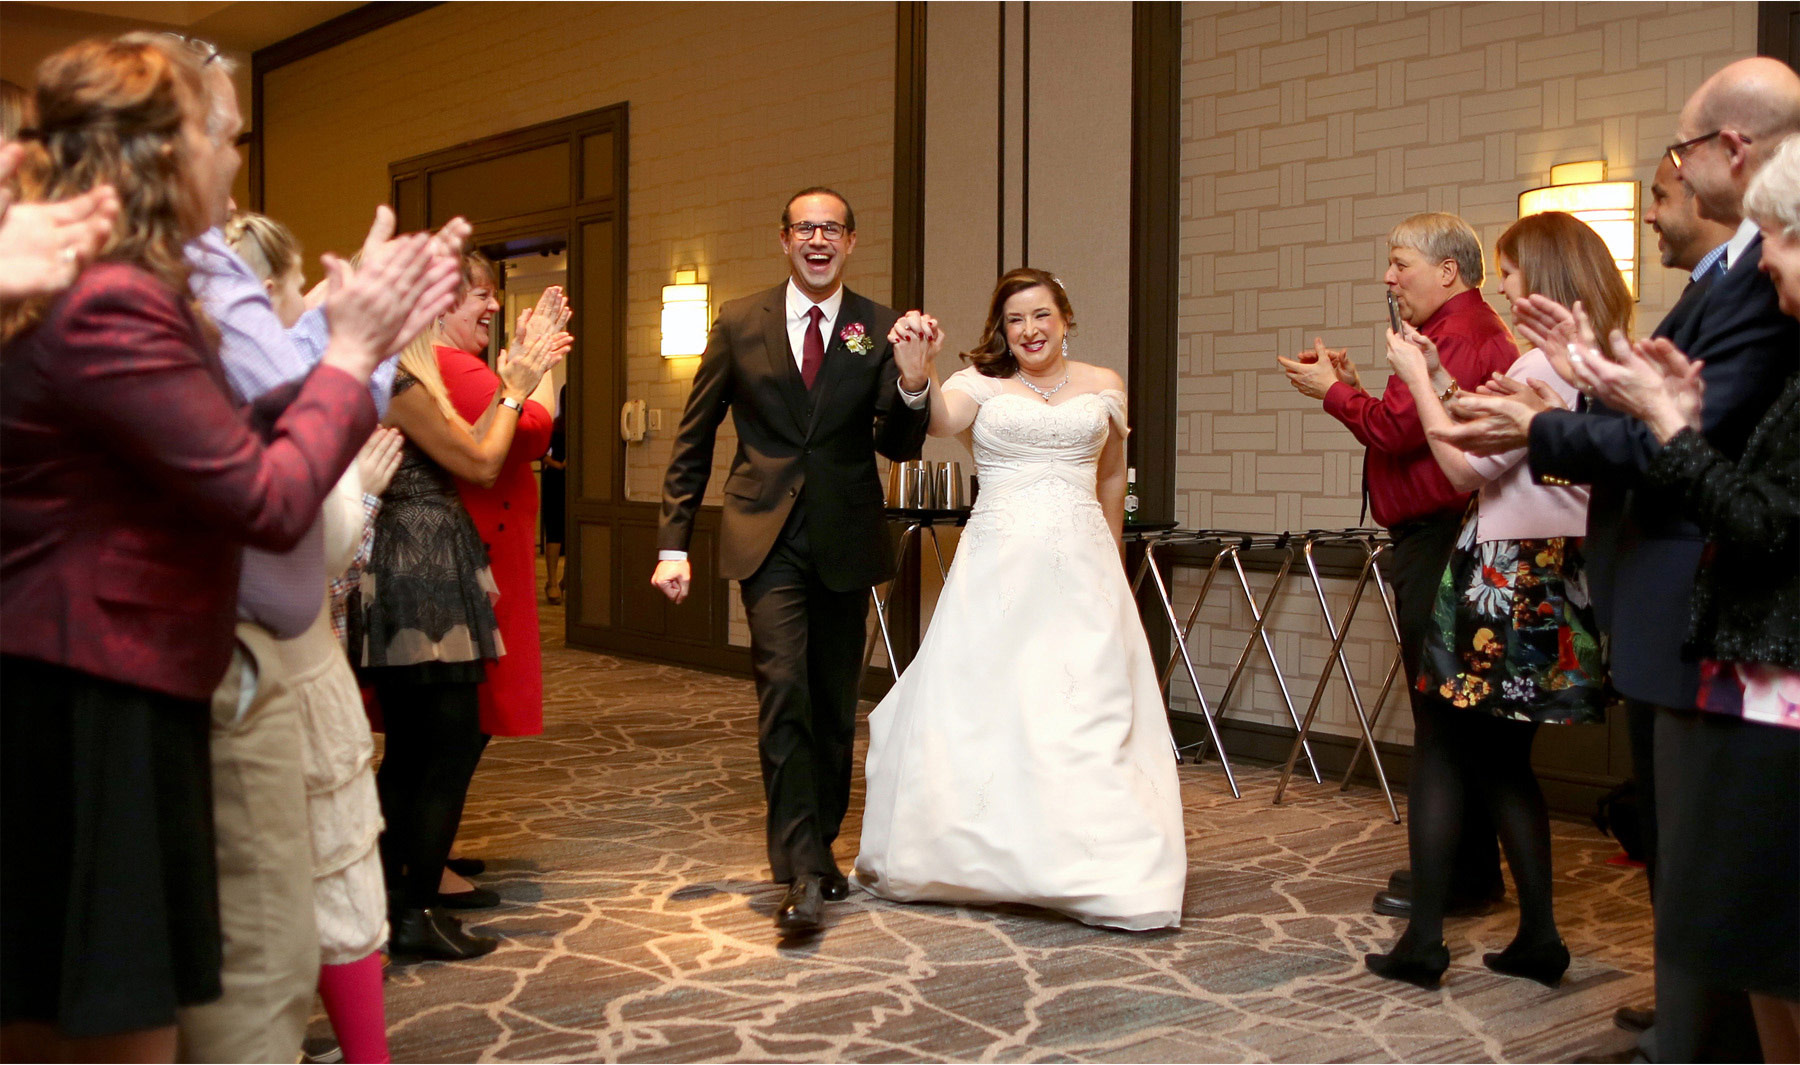 16-Minnetonka-Minnesota-Wedding-Photographer-by-Andrew-Vick-Photography-Winter-Marriott-Southwest-Reception-Bride-Groom-Grand-March-Guests-Elizabeth-and-Brian.jpg.jpg